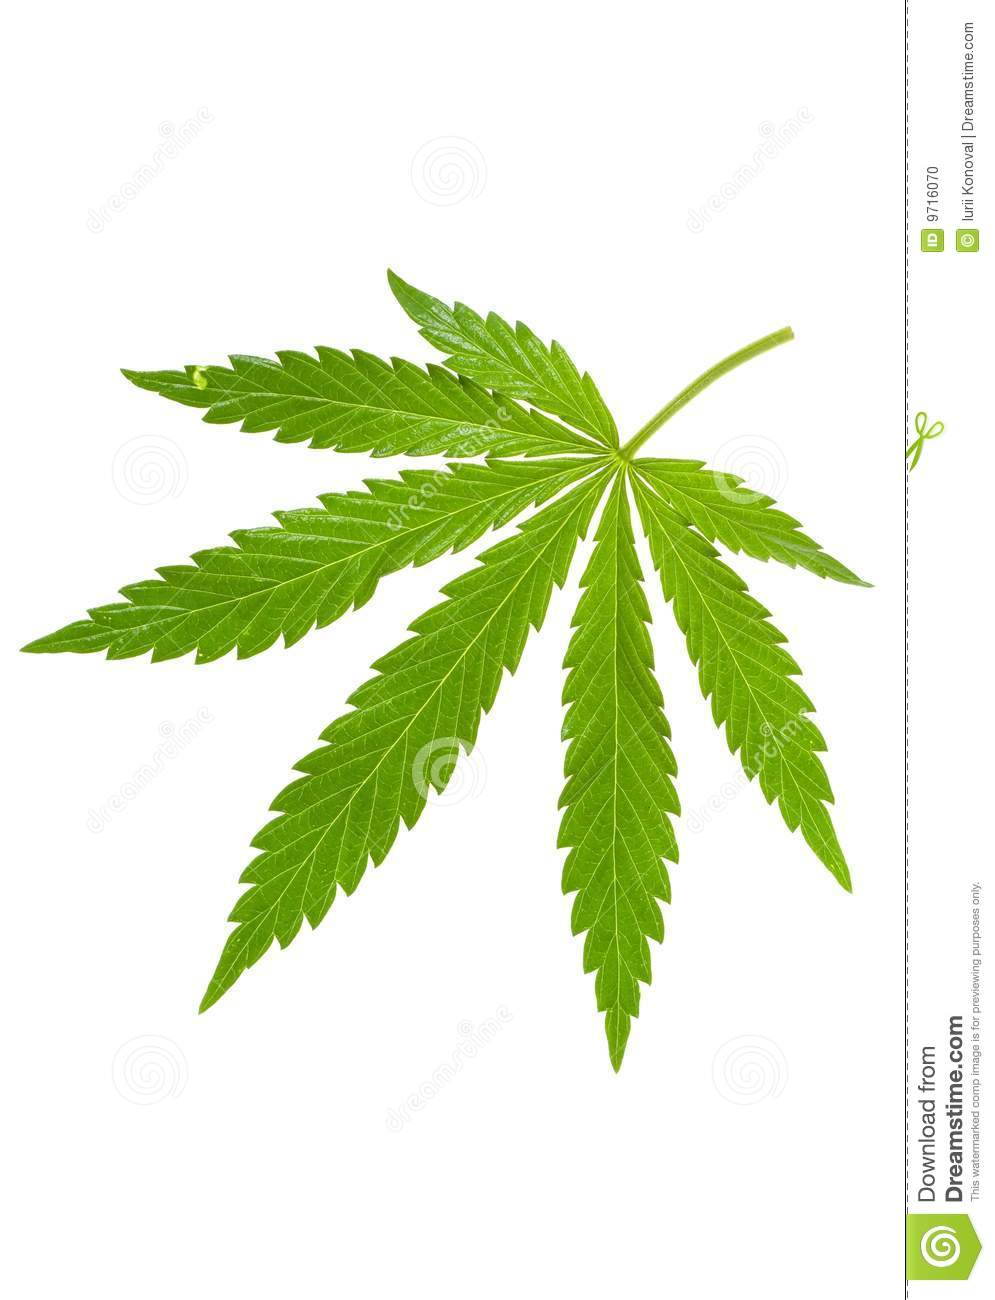 Hemp Leaf Stock Photo Image 9716070